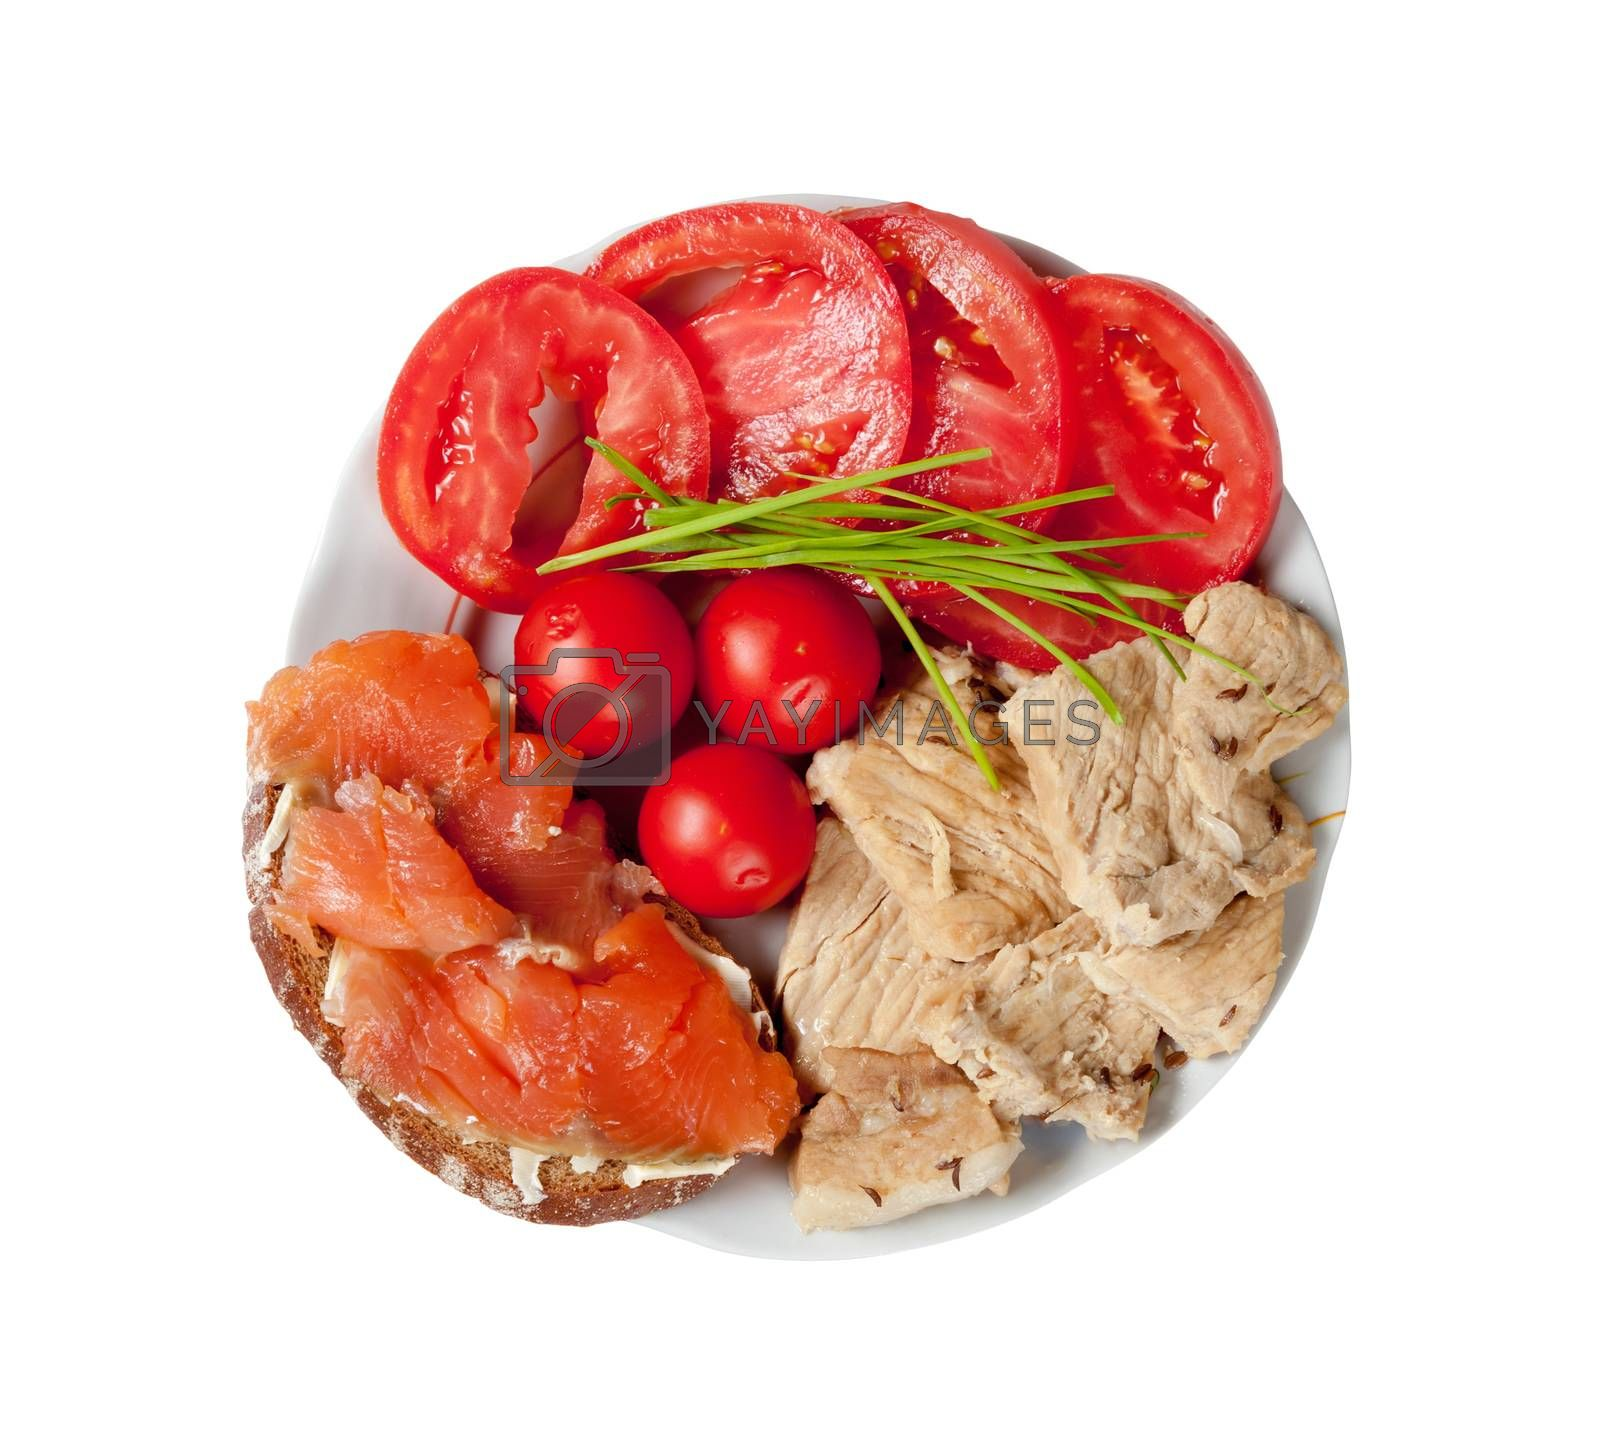 Fish, meat and tomatoes, correct balanced meal for athletes. Isolated on white